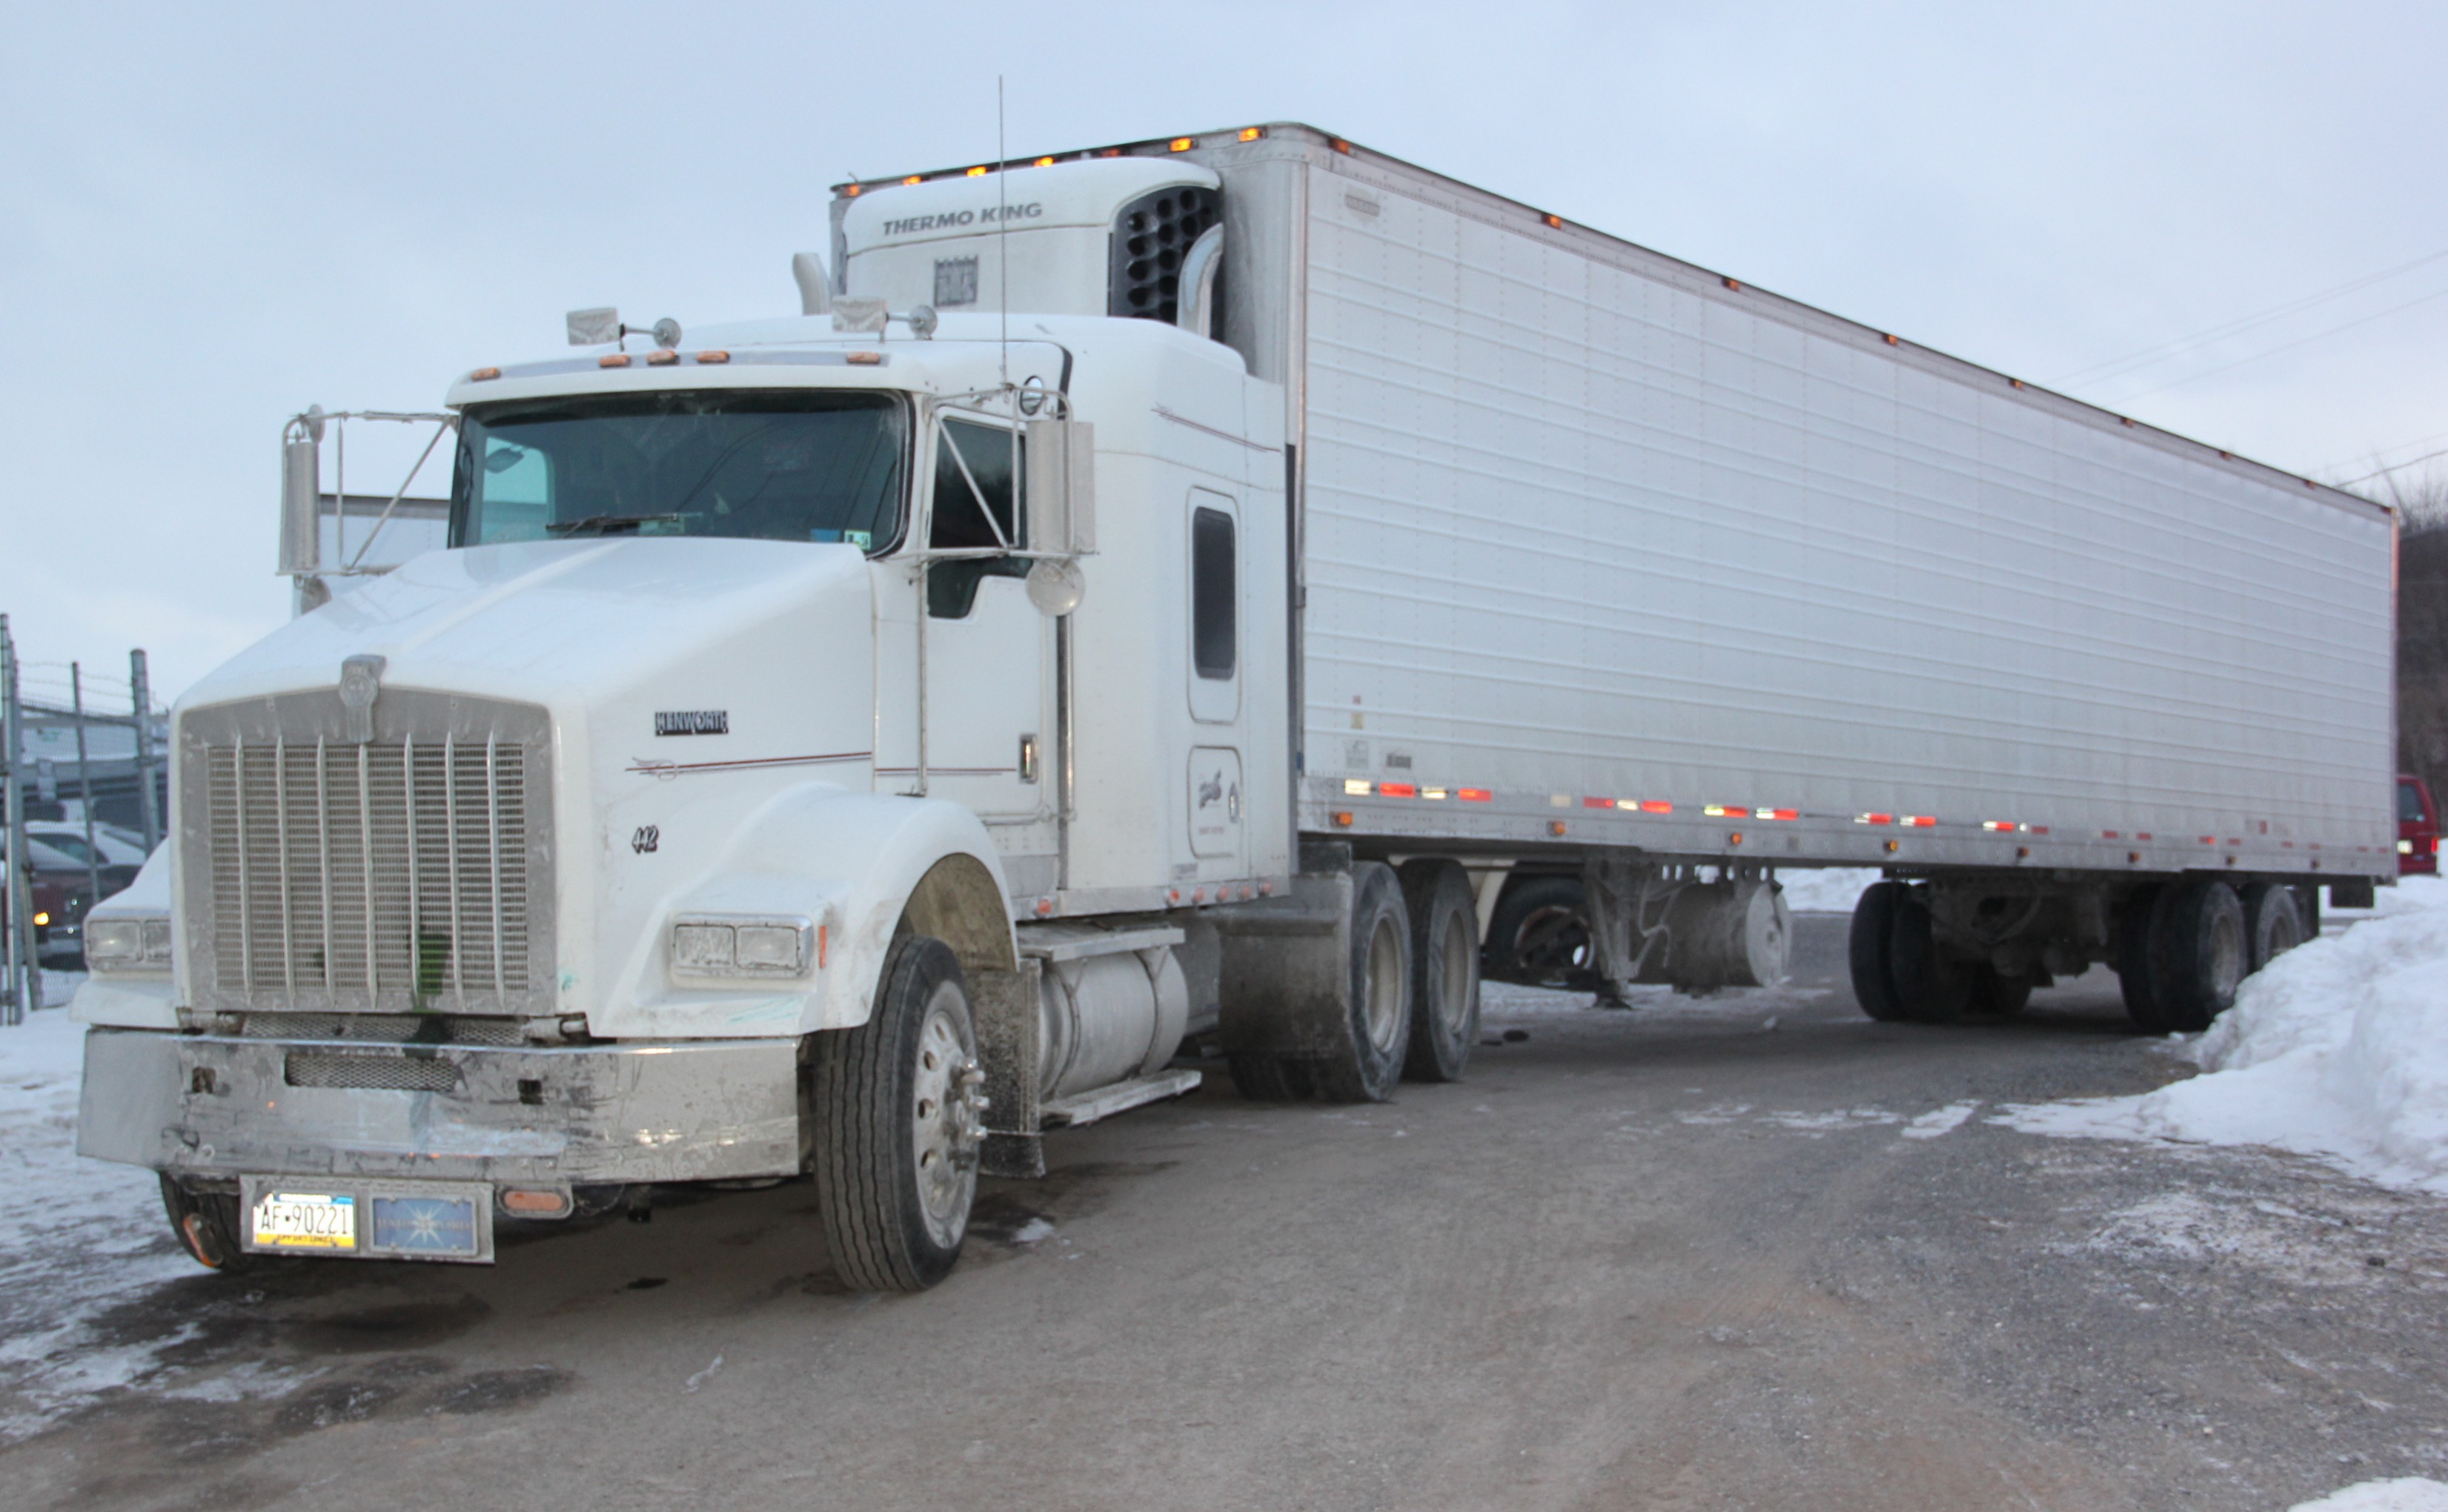 Truck With Christmas Lights 51003 further 16695 Car hauler trailer furthermore Back In Ussr moreover Watch also Semi Luxury And Luxury Coaches. on semi trailor